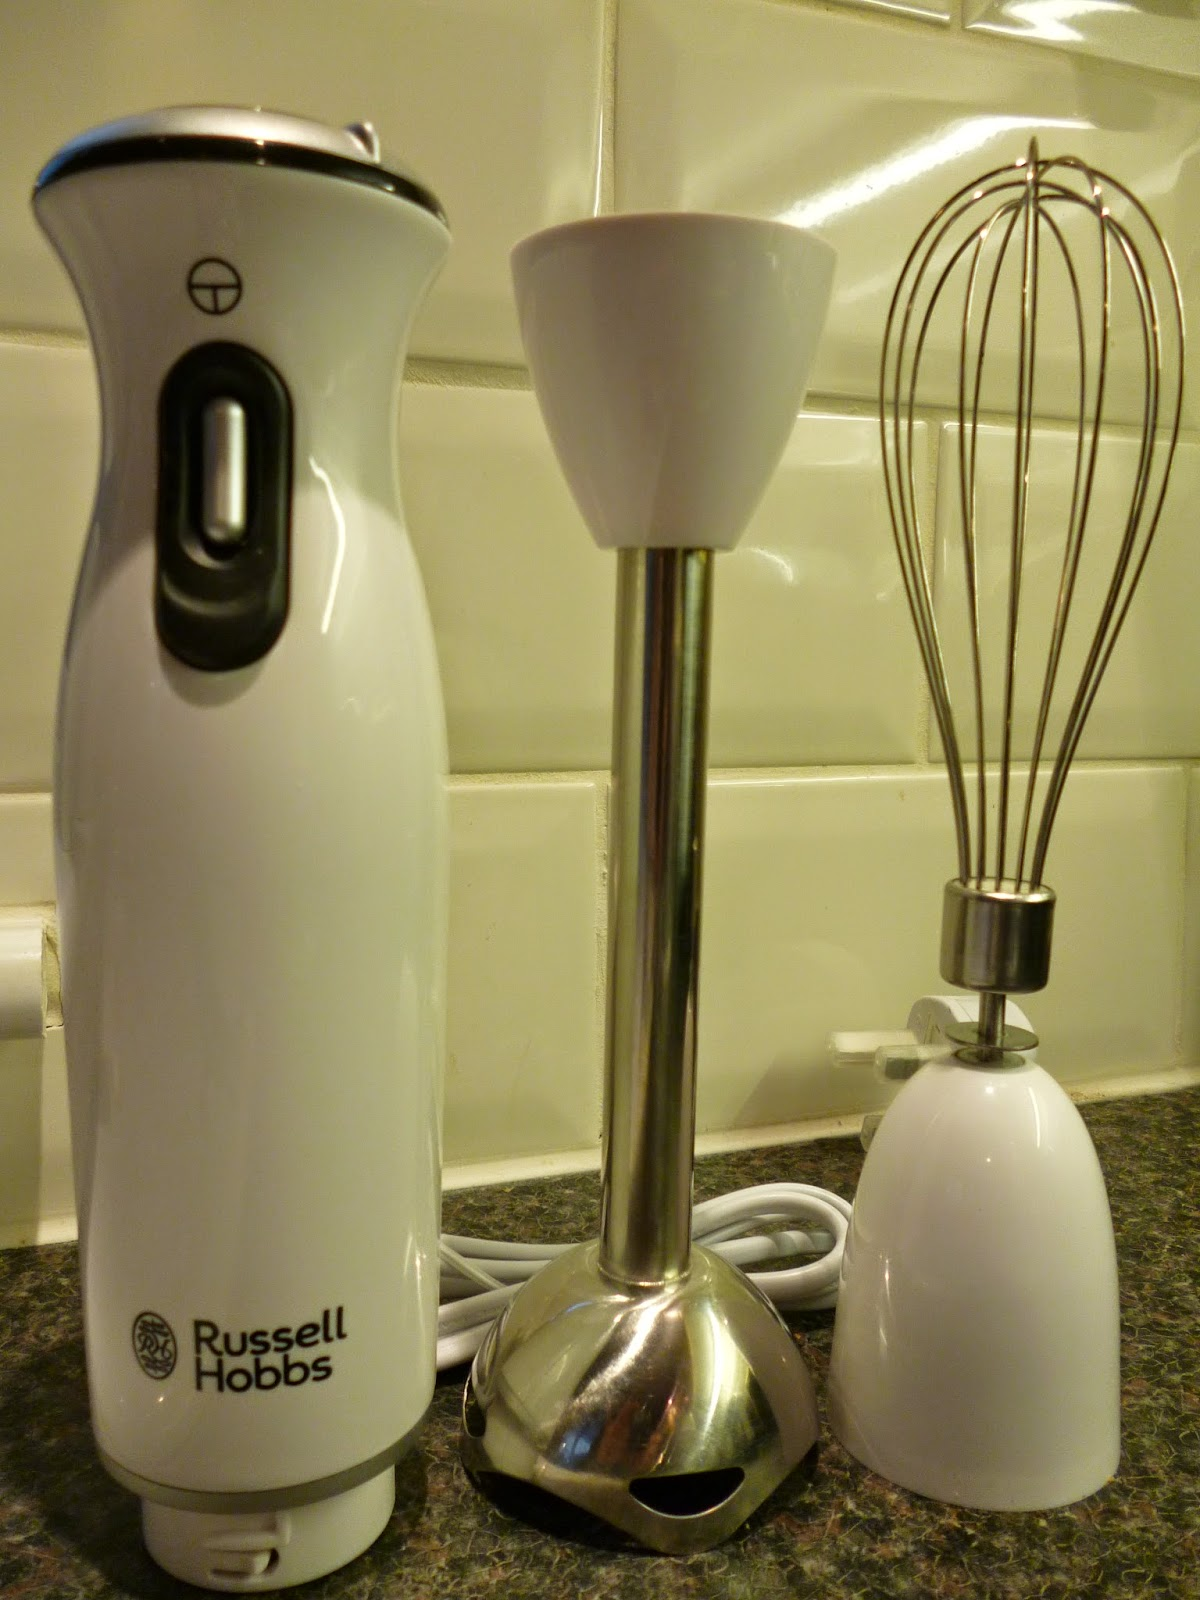 Russell Hobbs Aura 6 Hand Blender Review